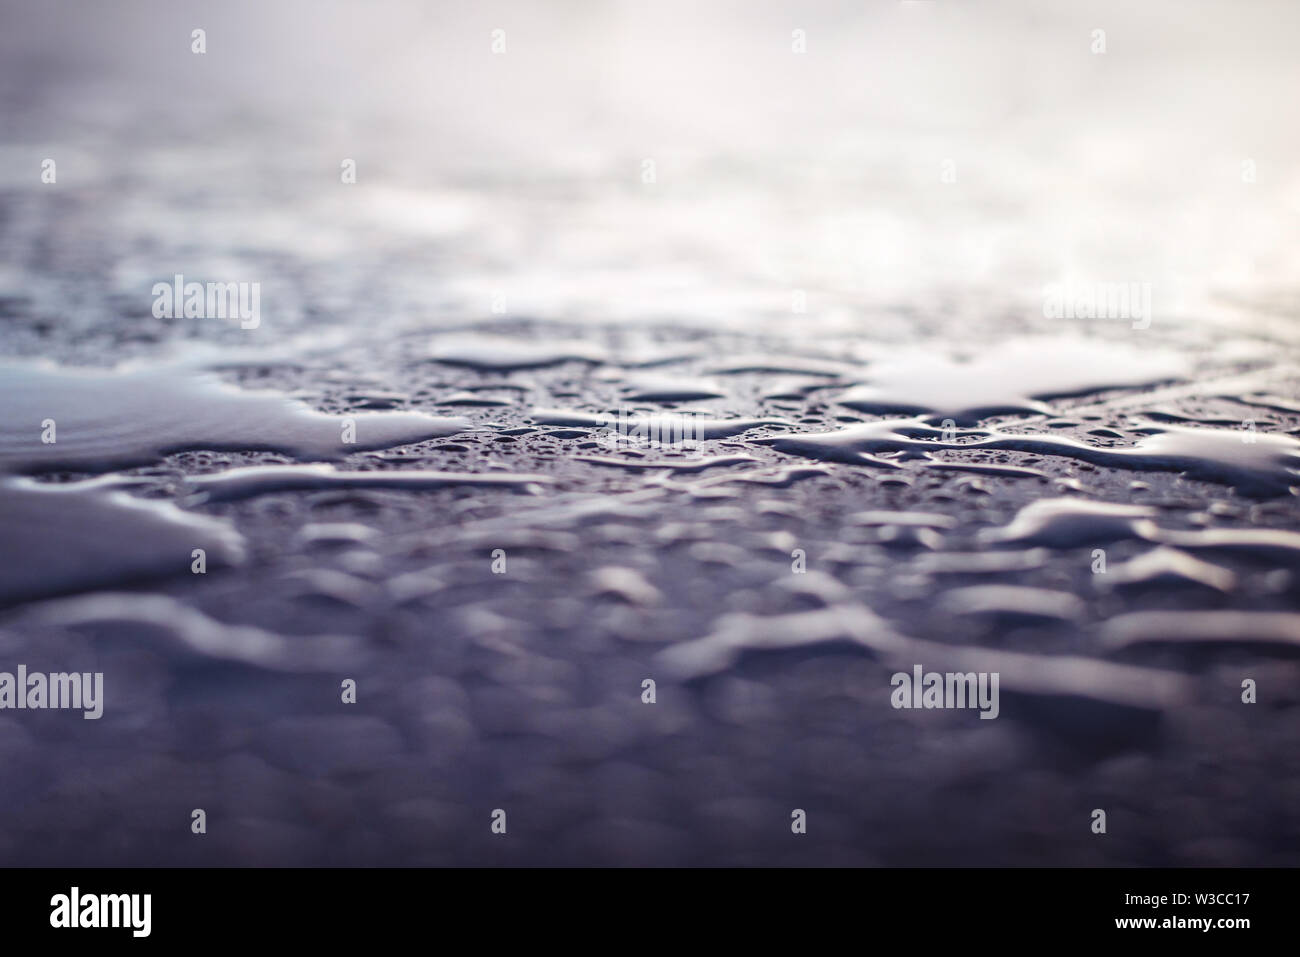 Water drops after the rain on the stone surface. - Stock Image